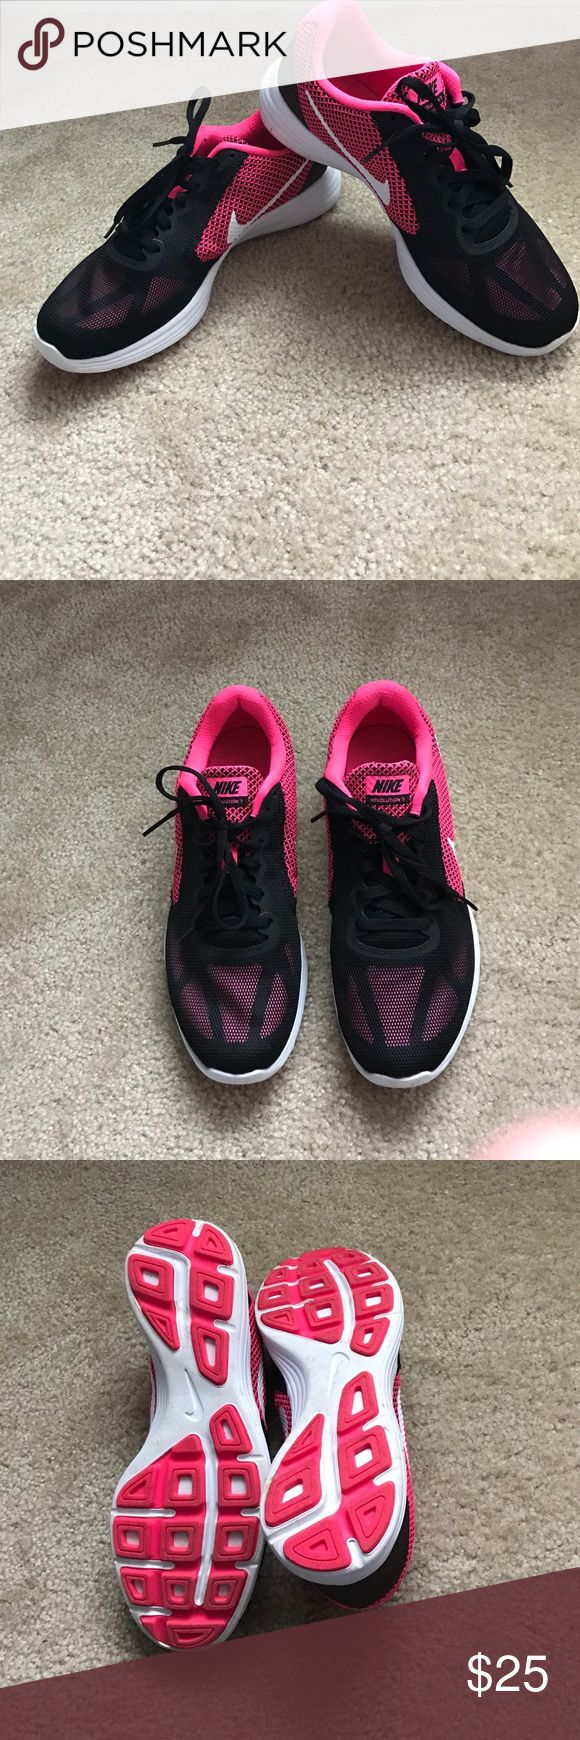 Nike women's athletic shoes size 9 Like new! Purchased a few months ago. Only worn a couple of times. Nike Shoes Athletic Shoes